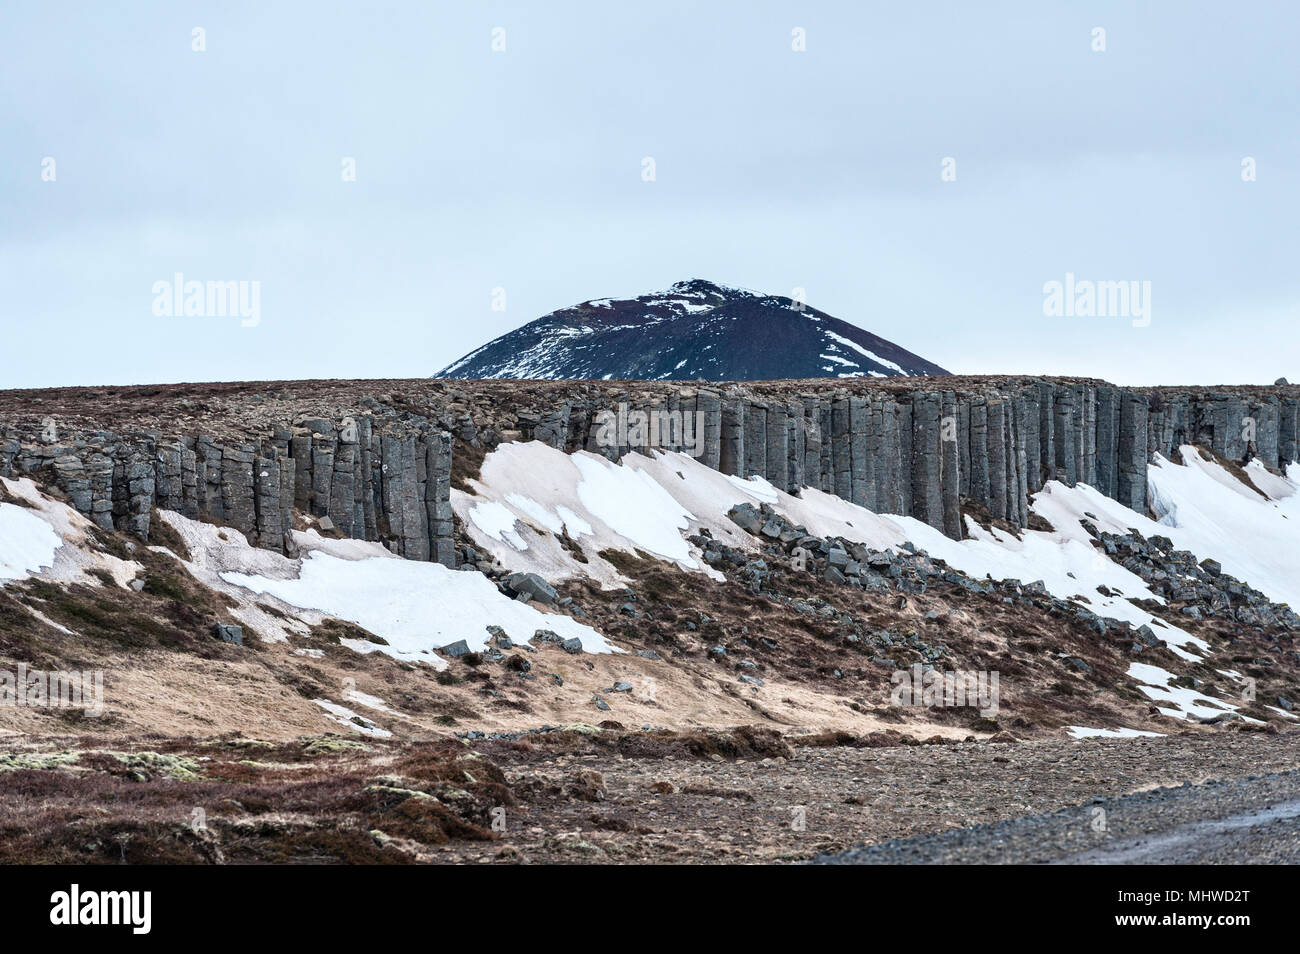 Snæfellsnes Peninsula, West Iceland. The 500m long cliff of basalt column stacks at Gerðuberg, just off highway 54 - Stock Image